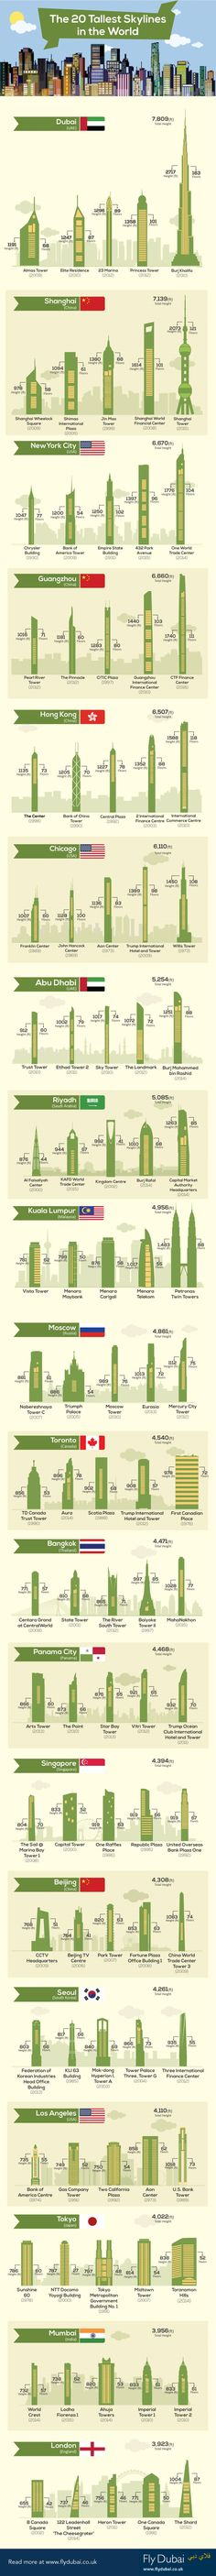 The 20 Tallest Skylines In The World #infographic #Travel #Skyscraper